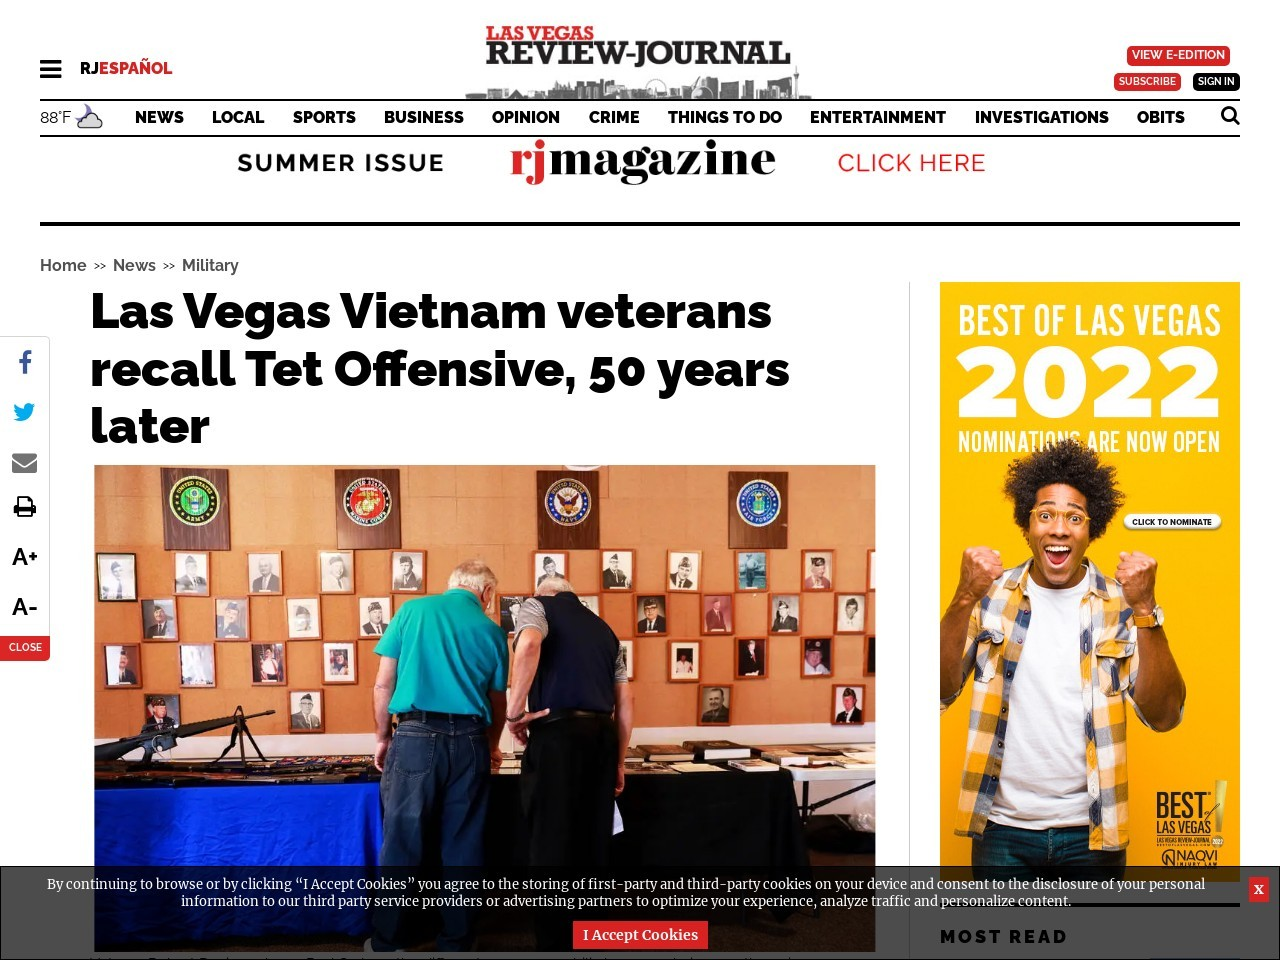 Las Vegas Vietnam veterans recall Tet Offensive, 50 years later